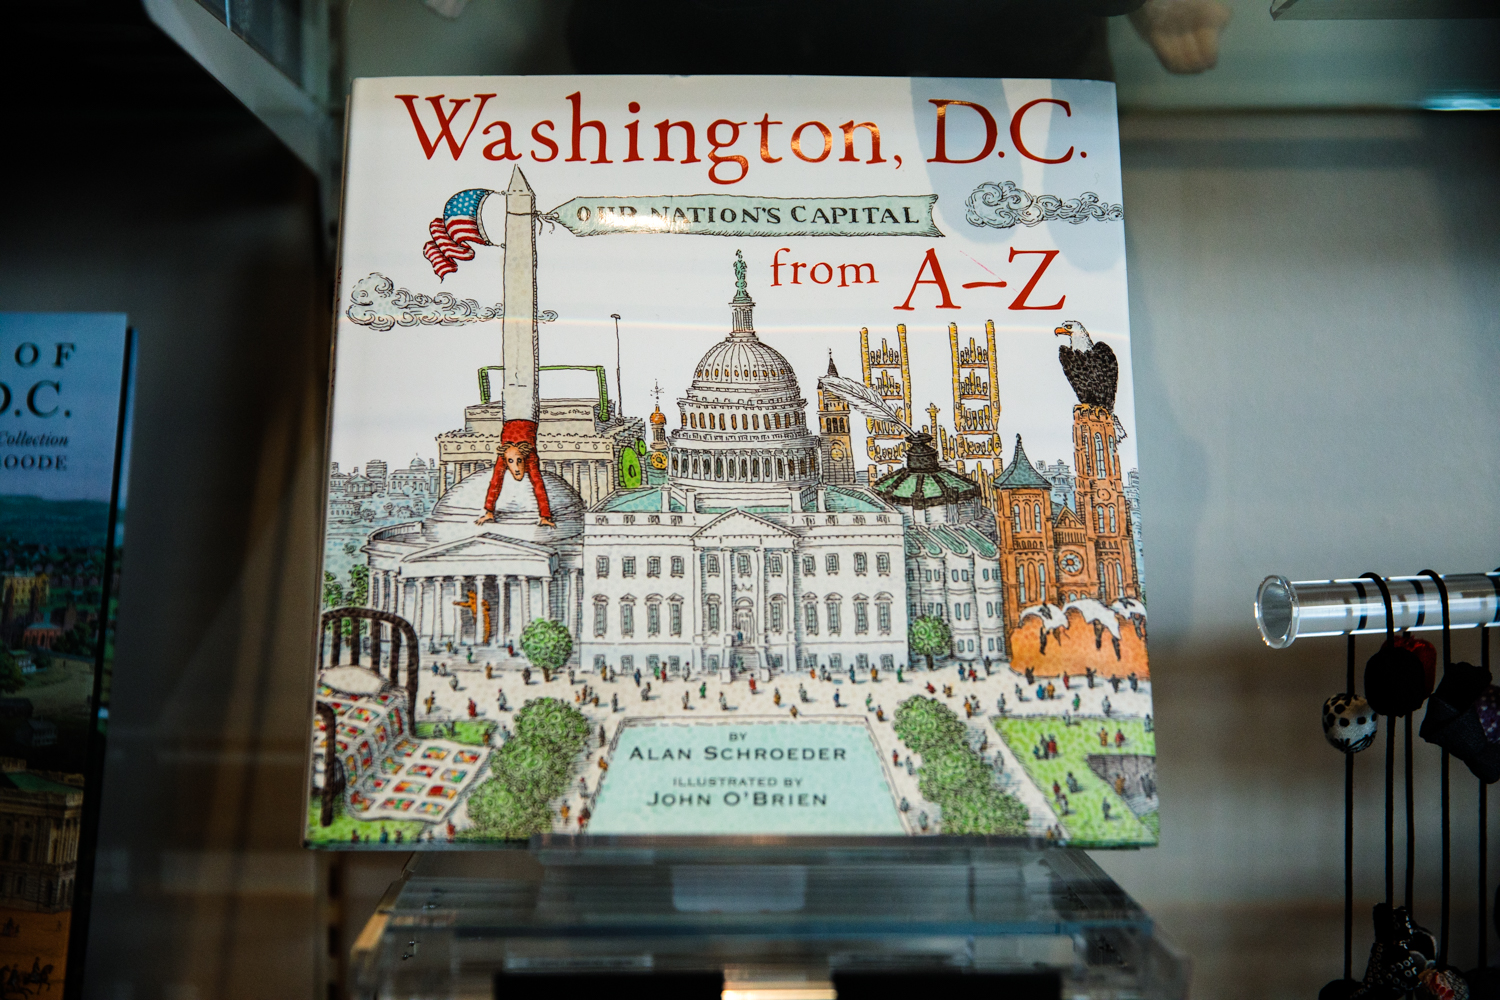 washington a-z book